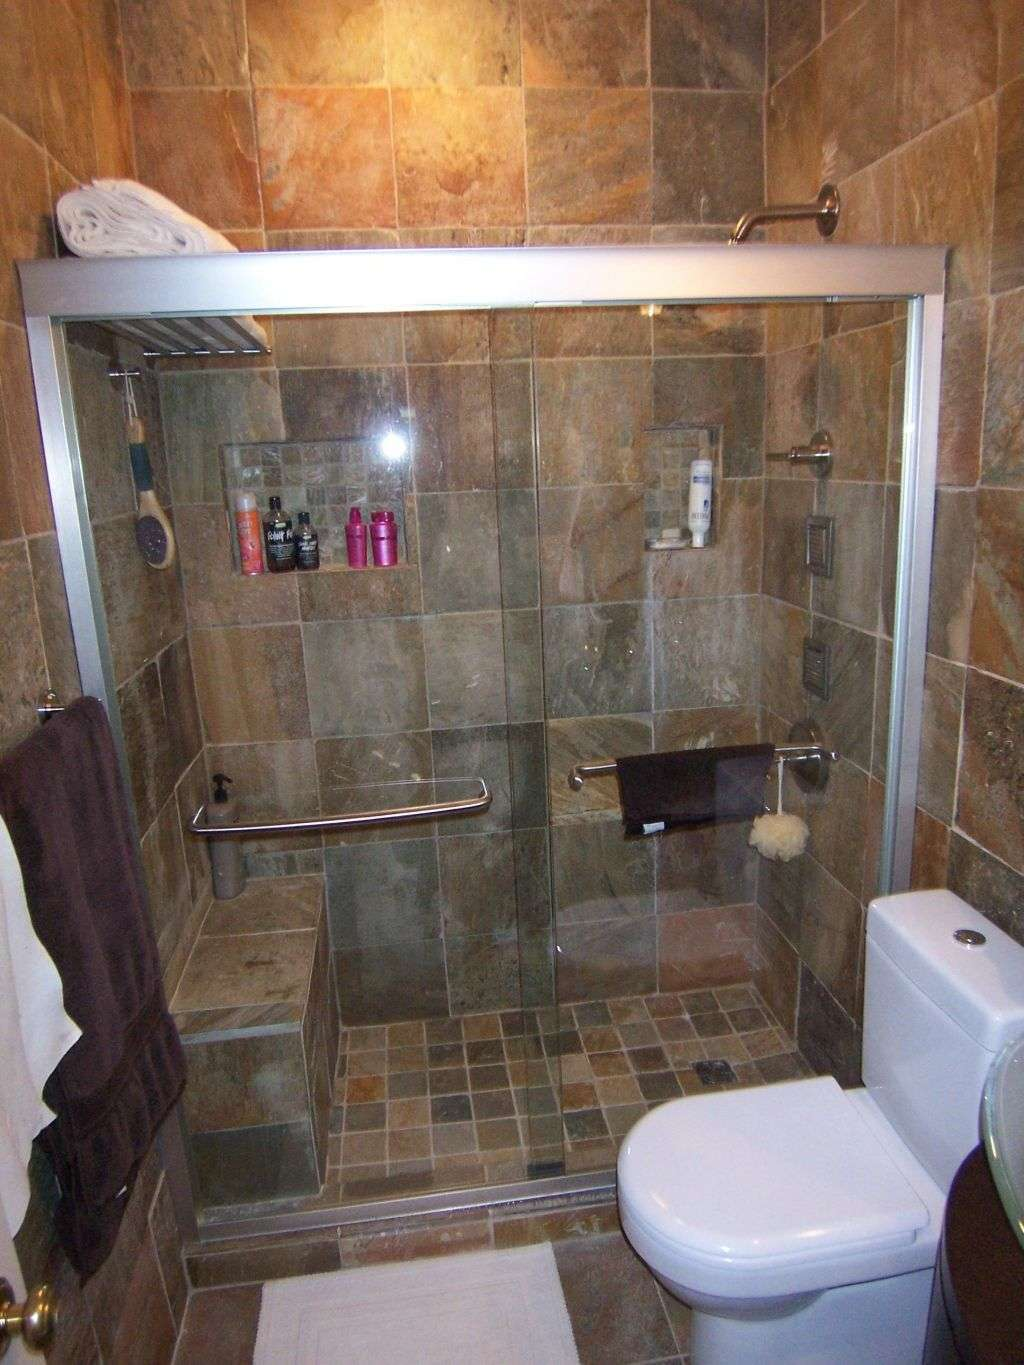 40 wonderful pictures and ideas of 1920s bathroom tile designs - Bathroom shower ideas ...